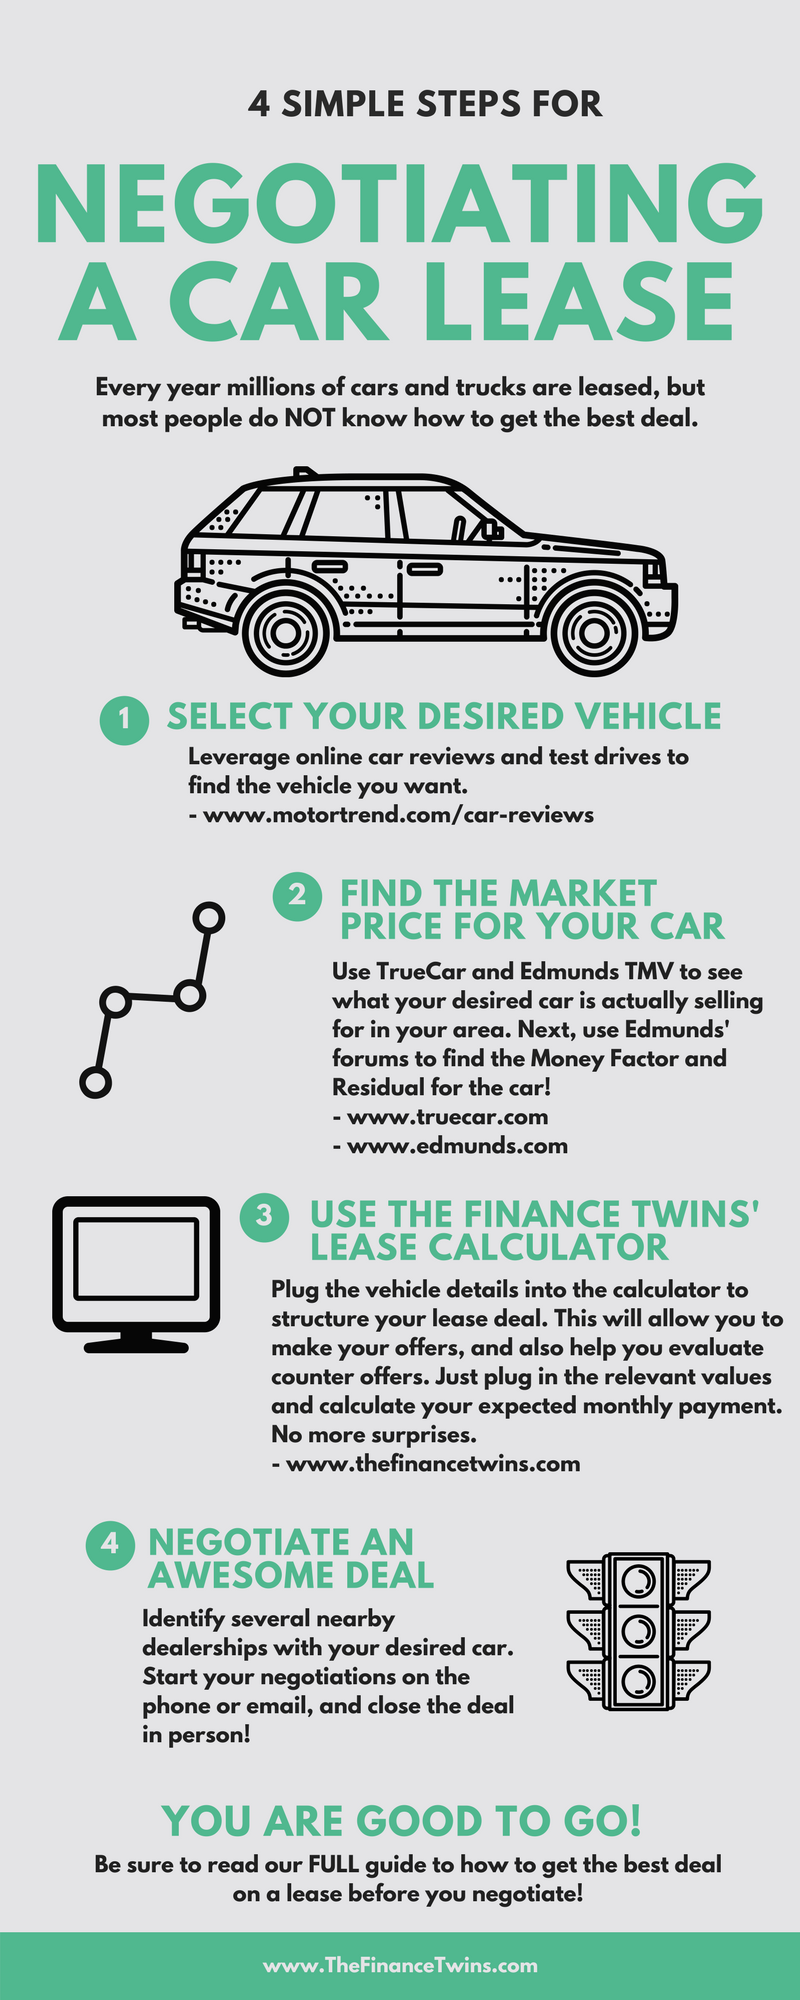 How To Negotiate A Car Lease Get The Best Deal The Ultimate Guide Car Lease Lease Deals Car Buying